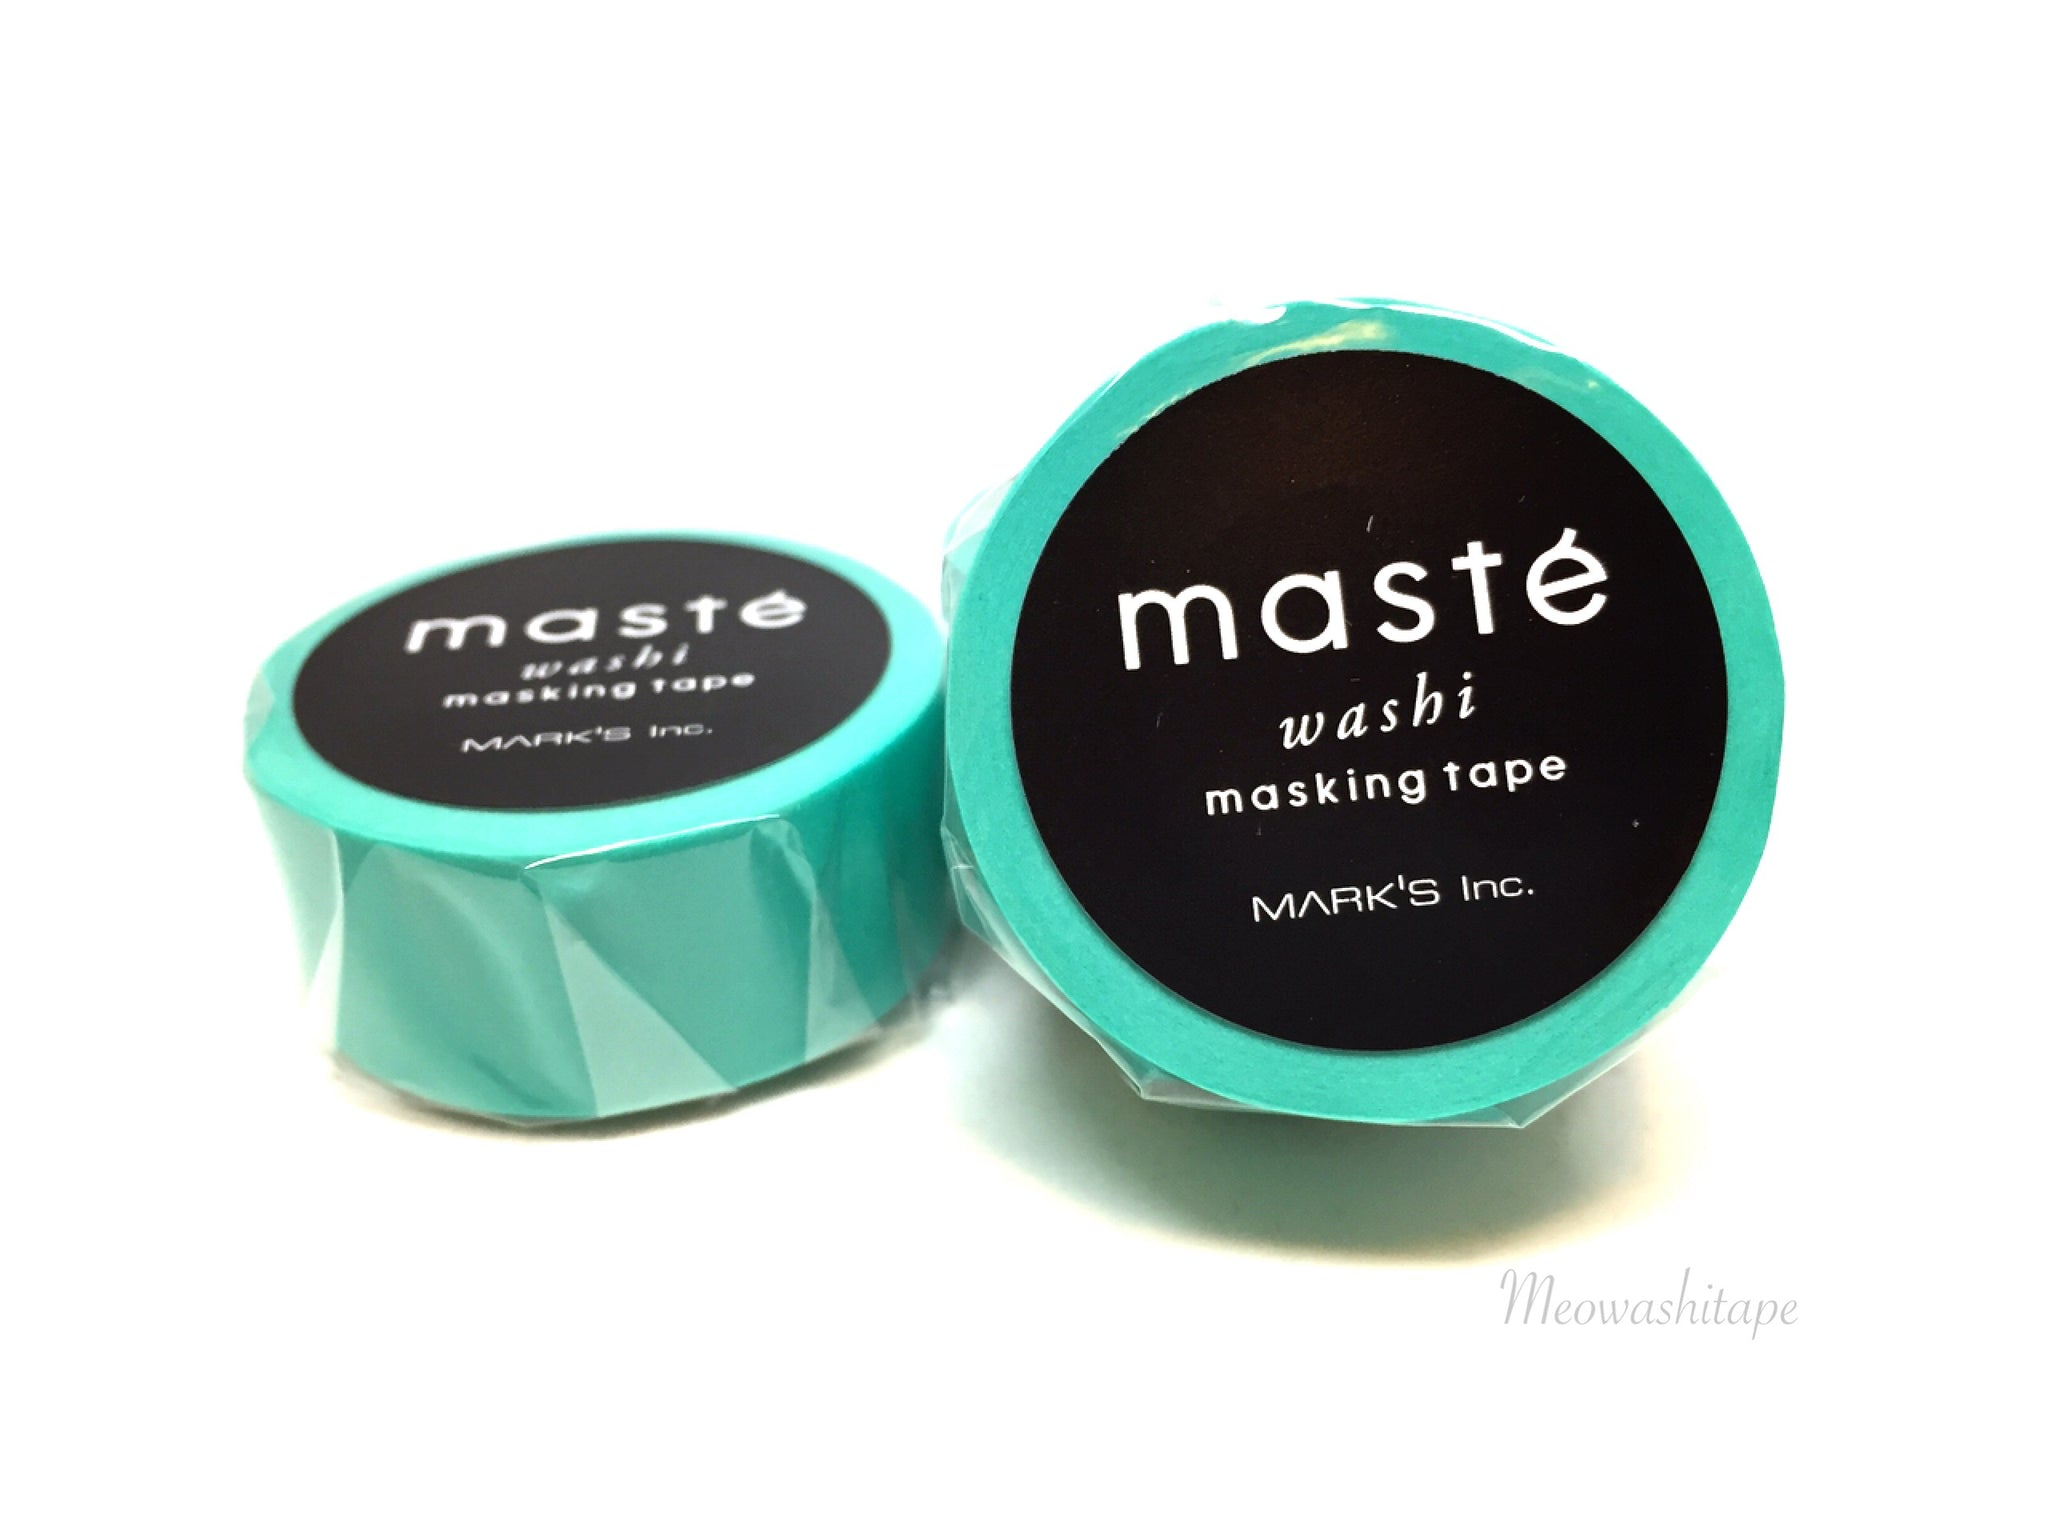 Mark's maste BASIC - Plain mint washi tape